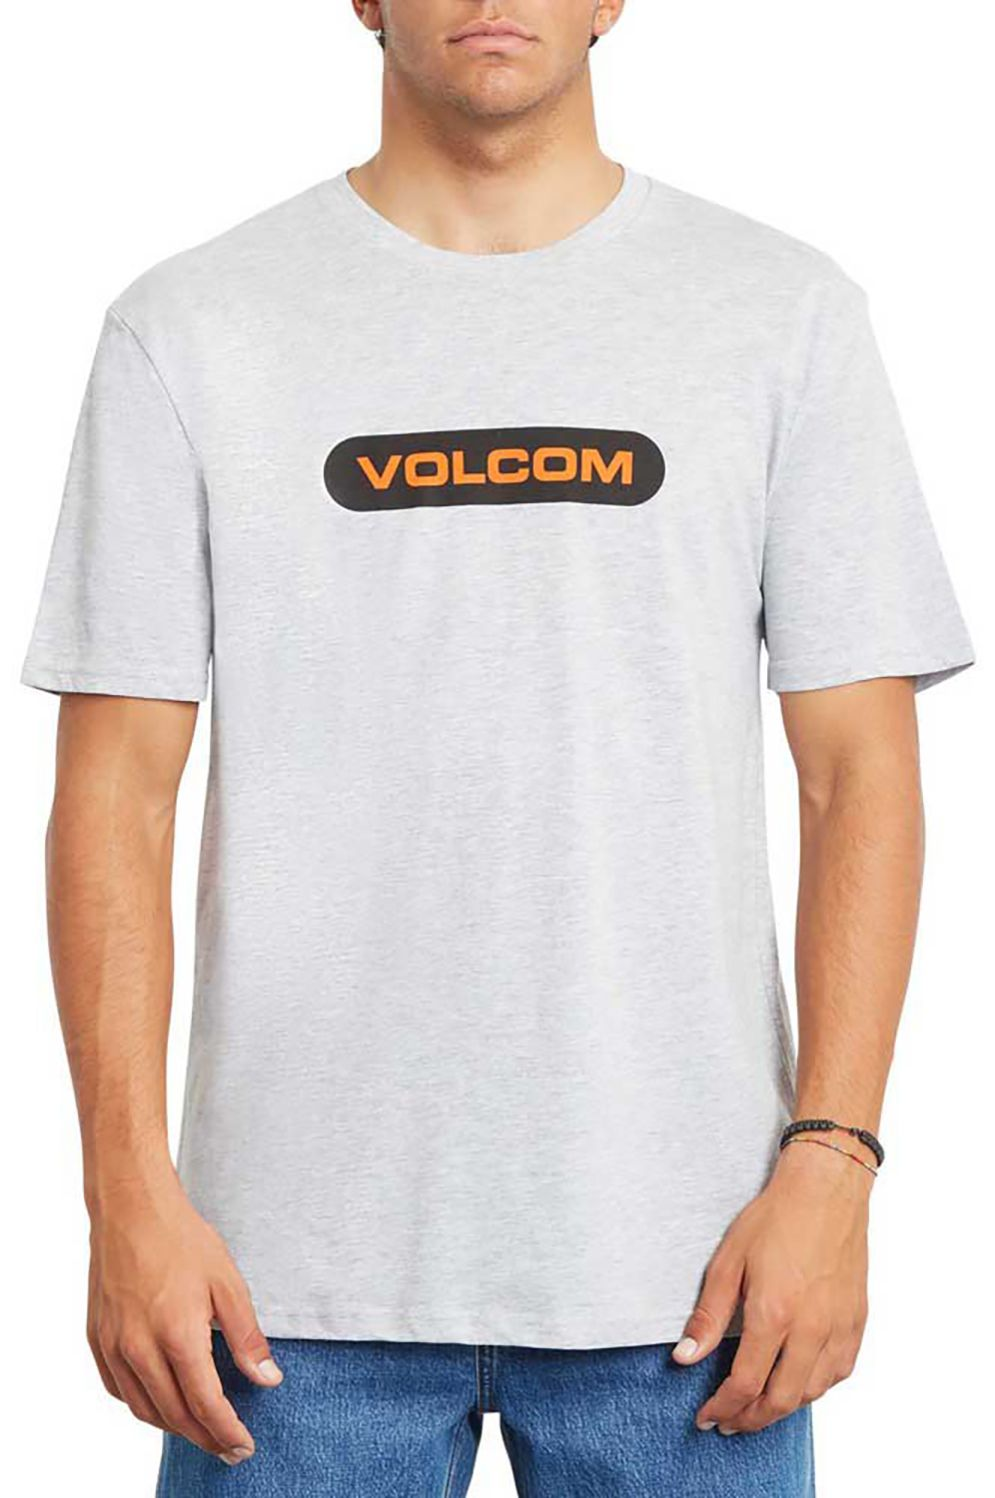 T-Shirt Volcom NEW EURO BSC SS Heather Grey